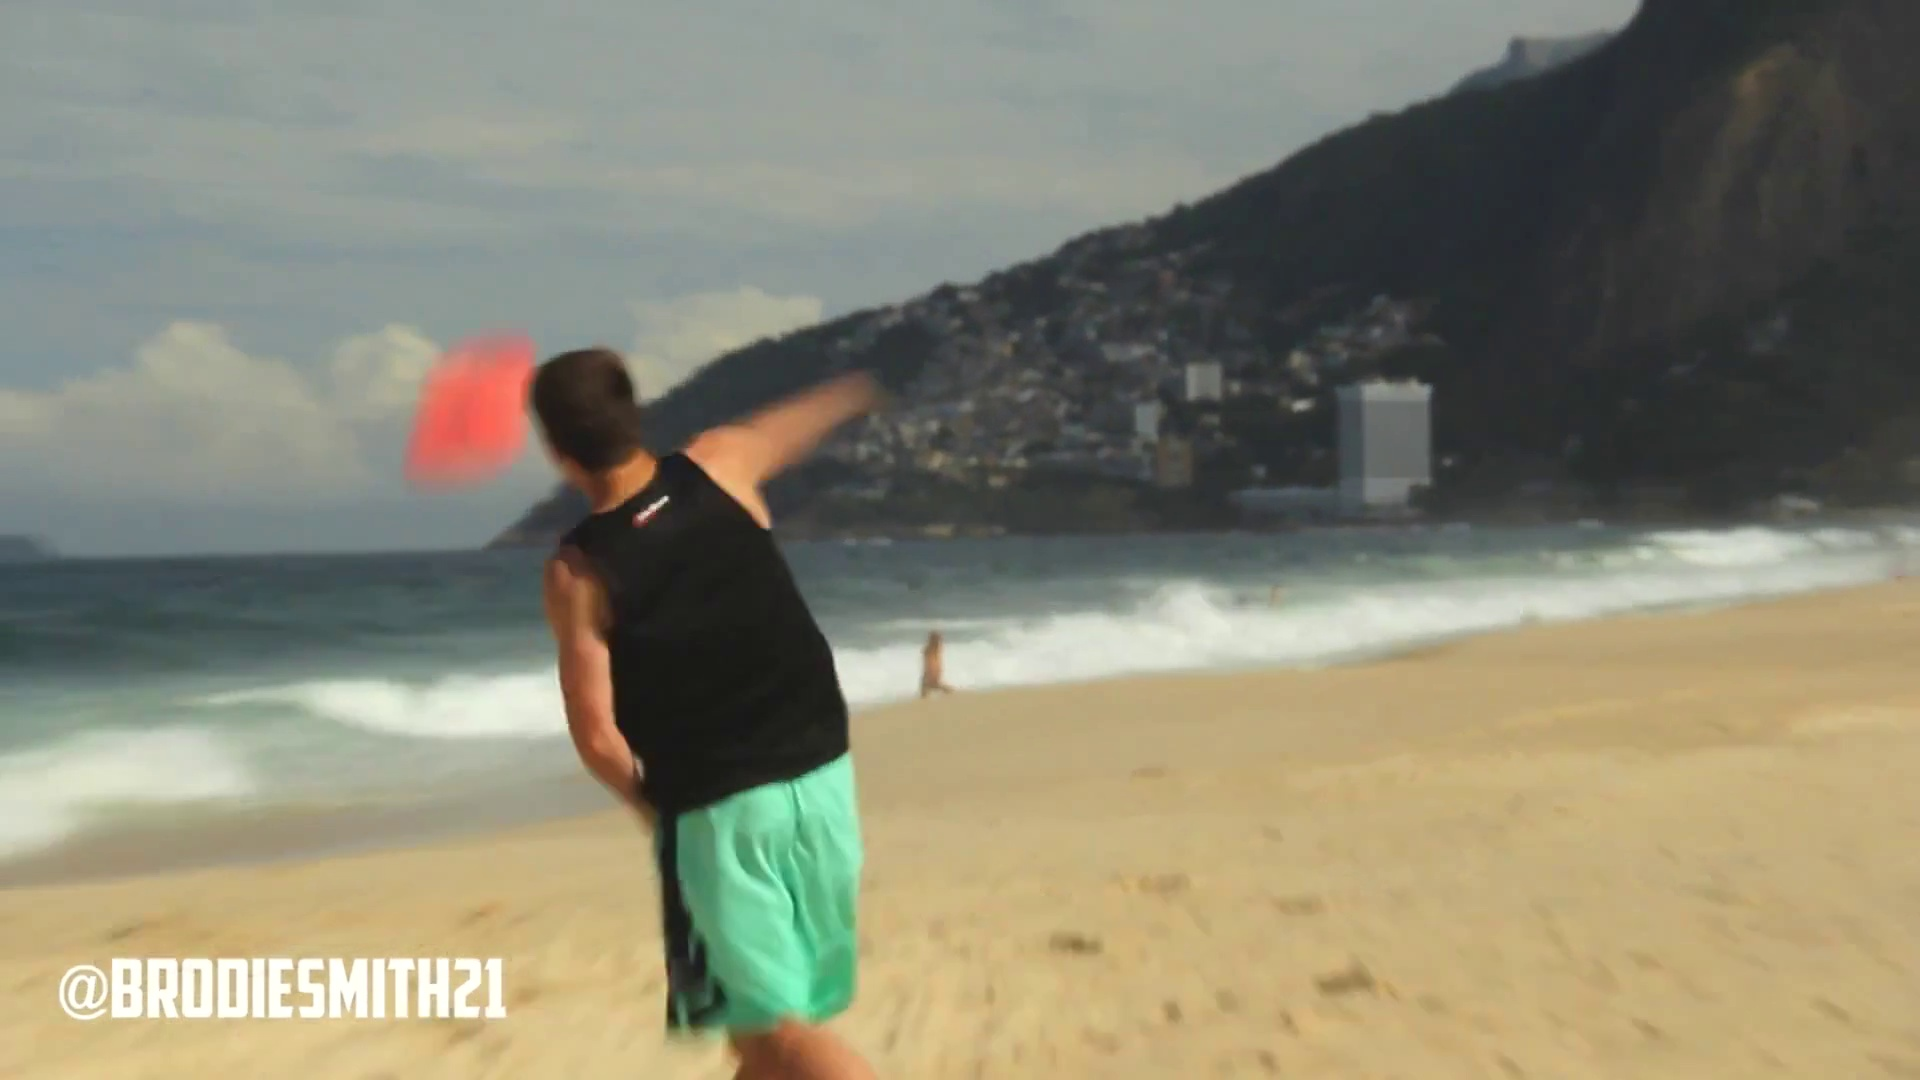 So impressive World Cup Trick Shots  by Brodie Smith